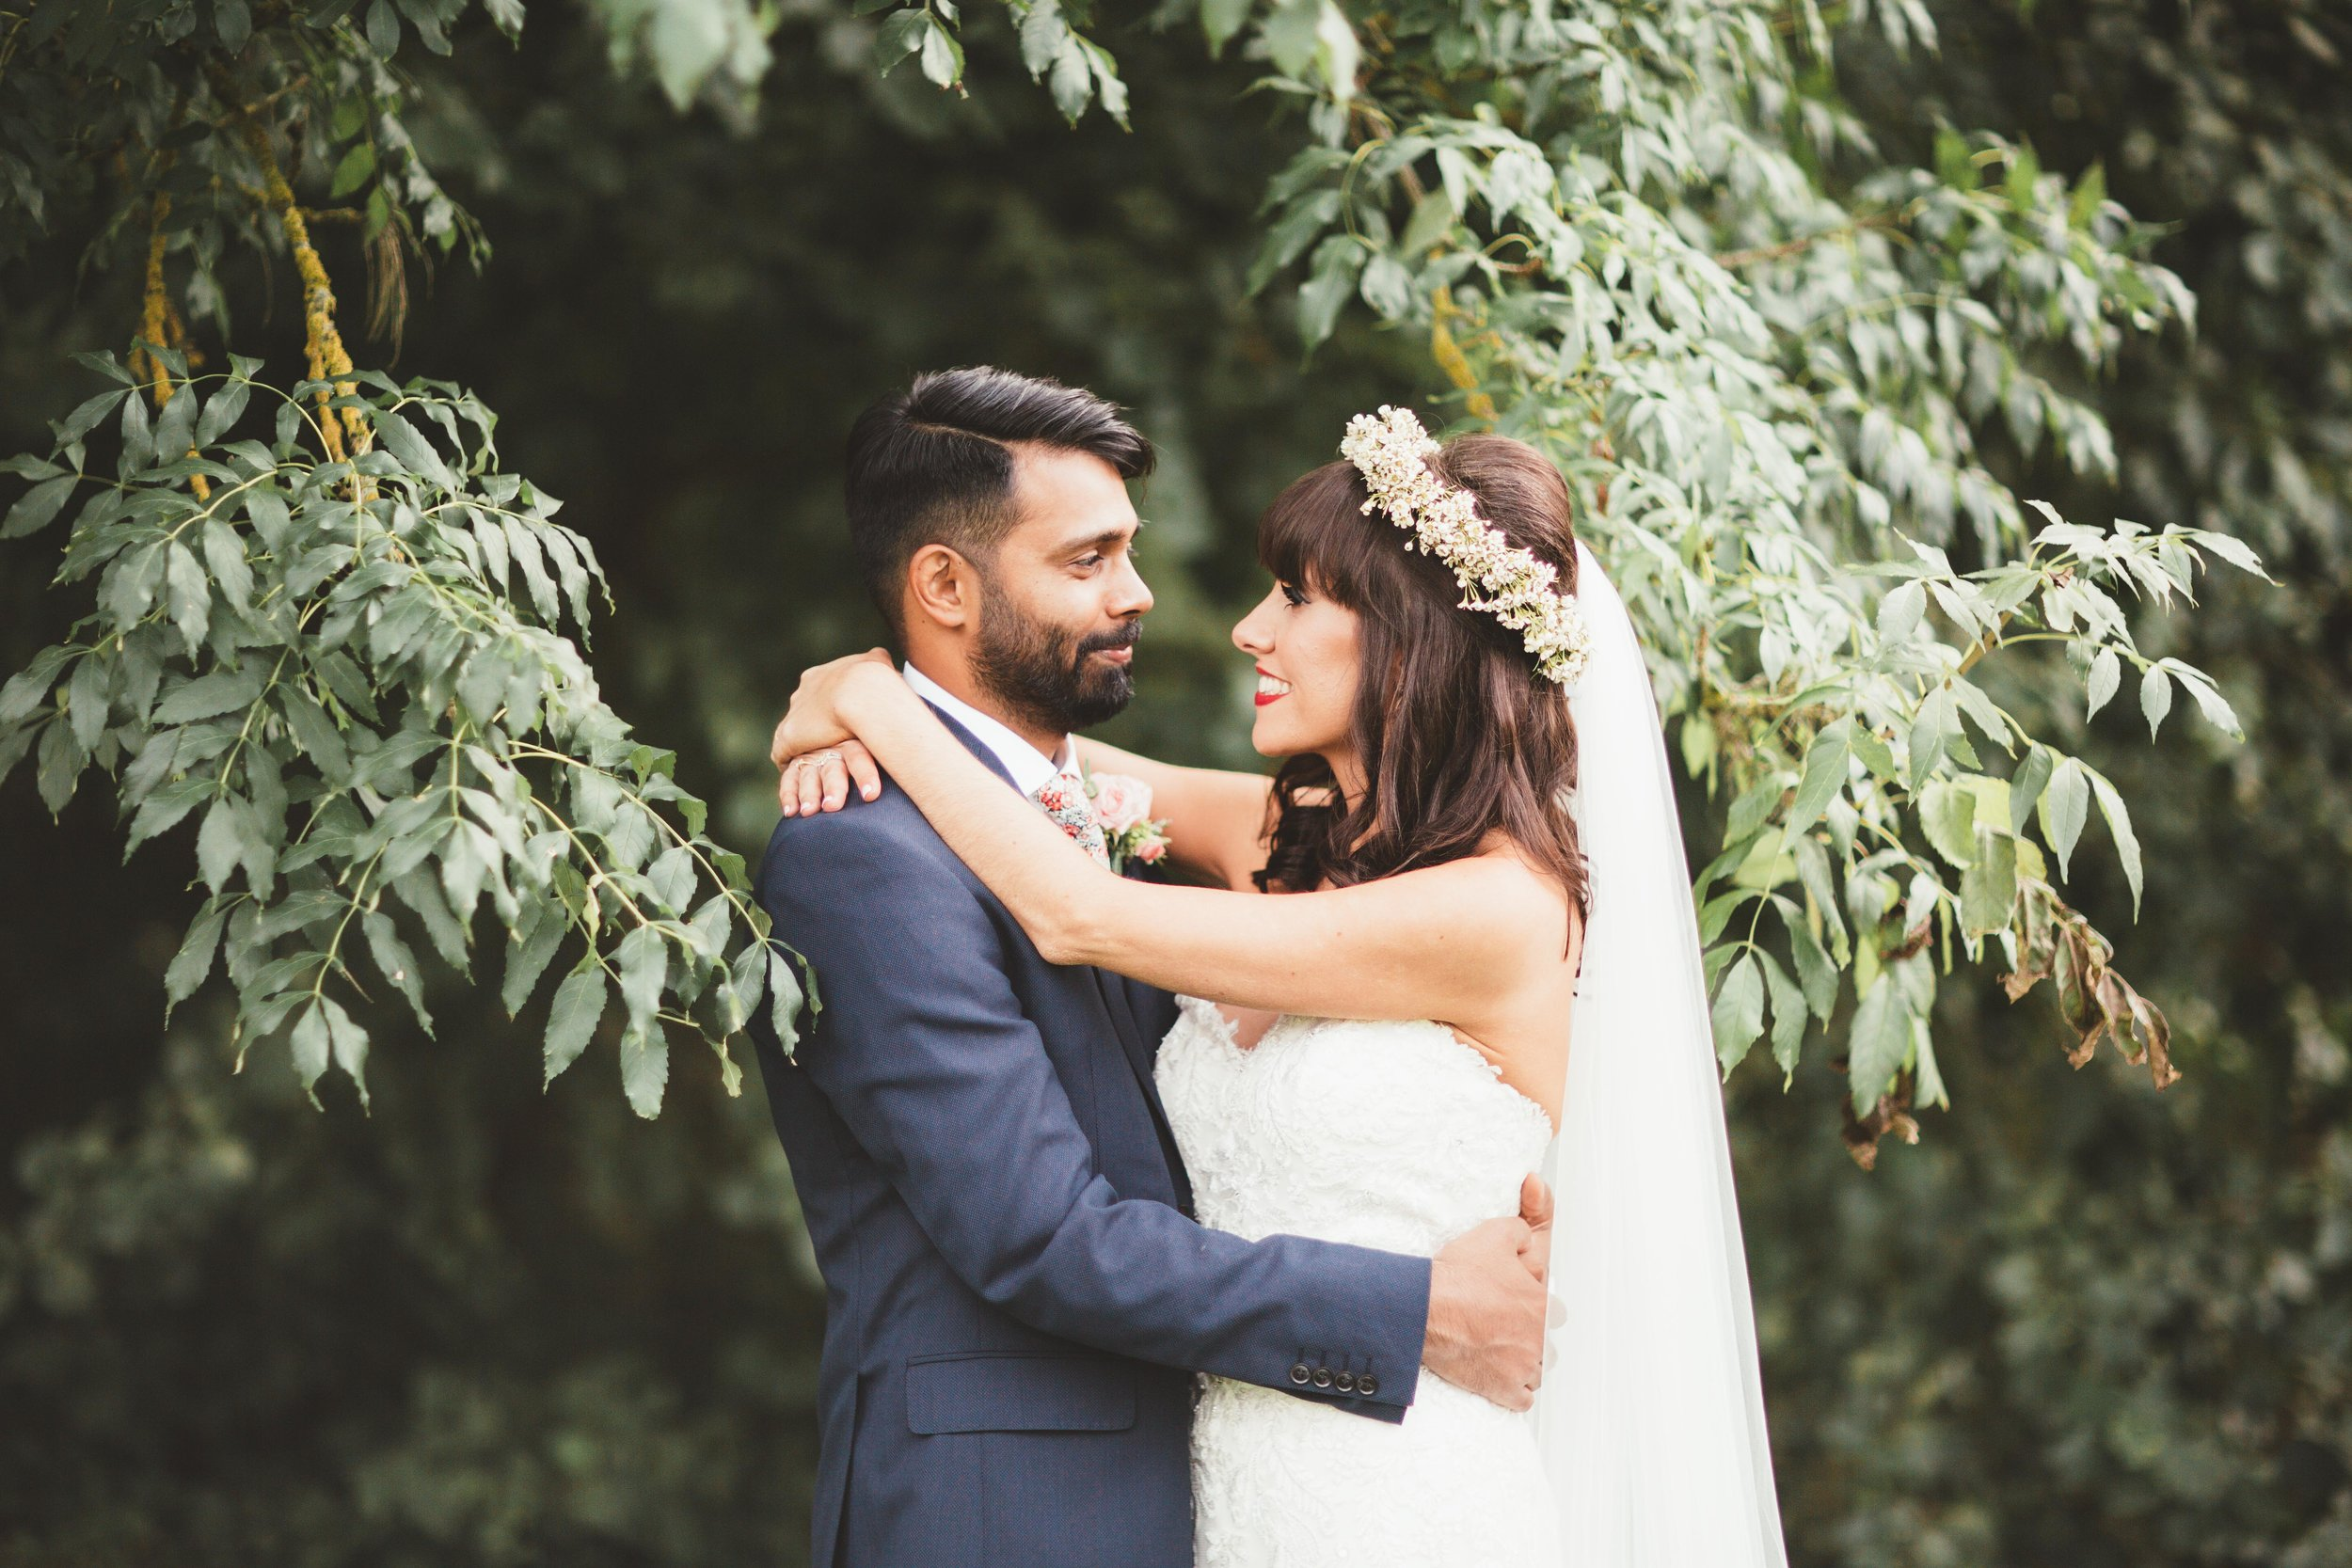 Image by Mary Anne Weddings